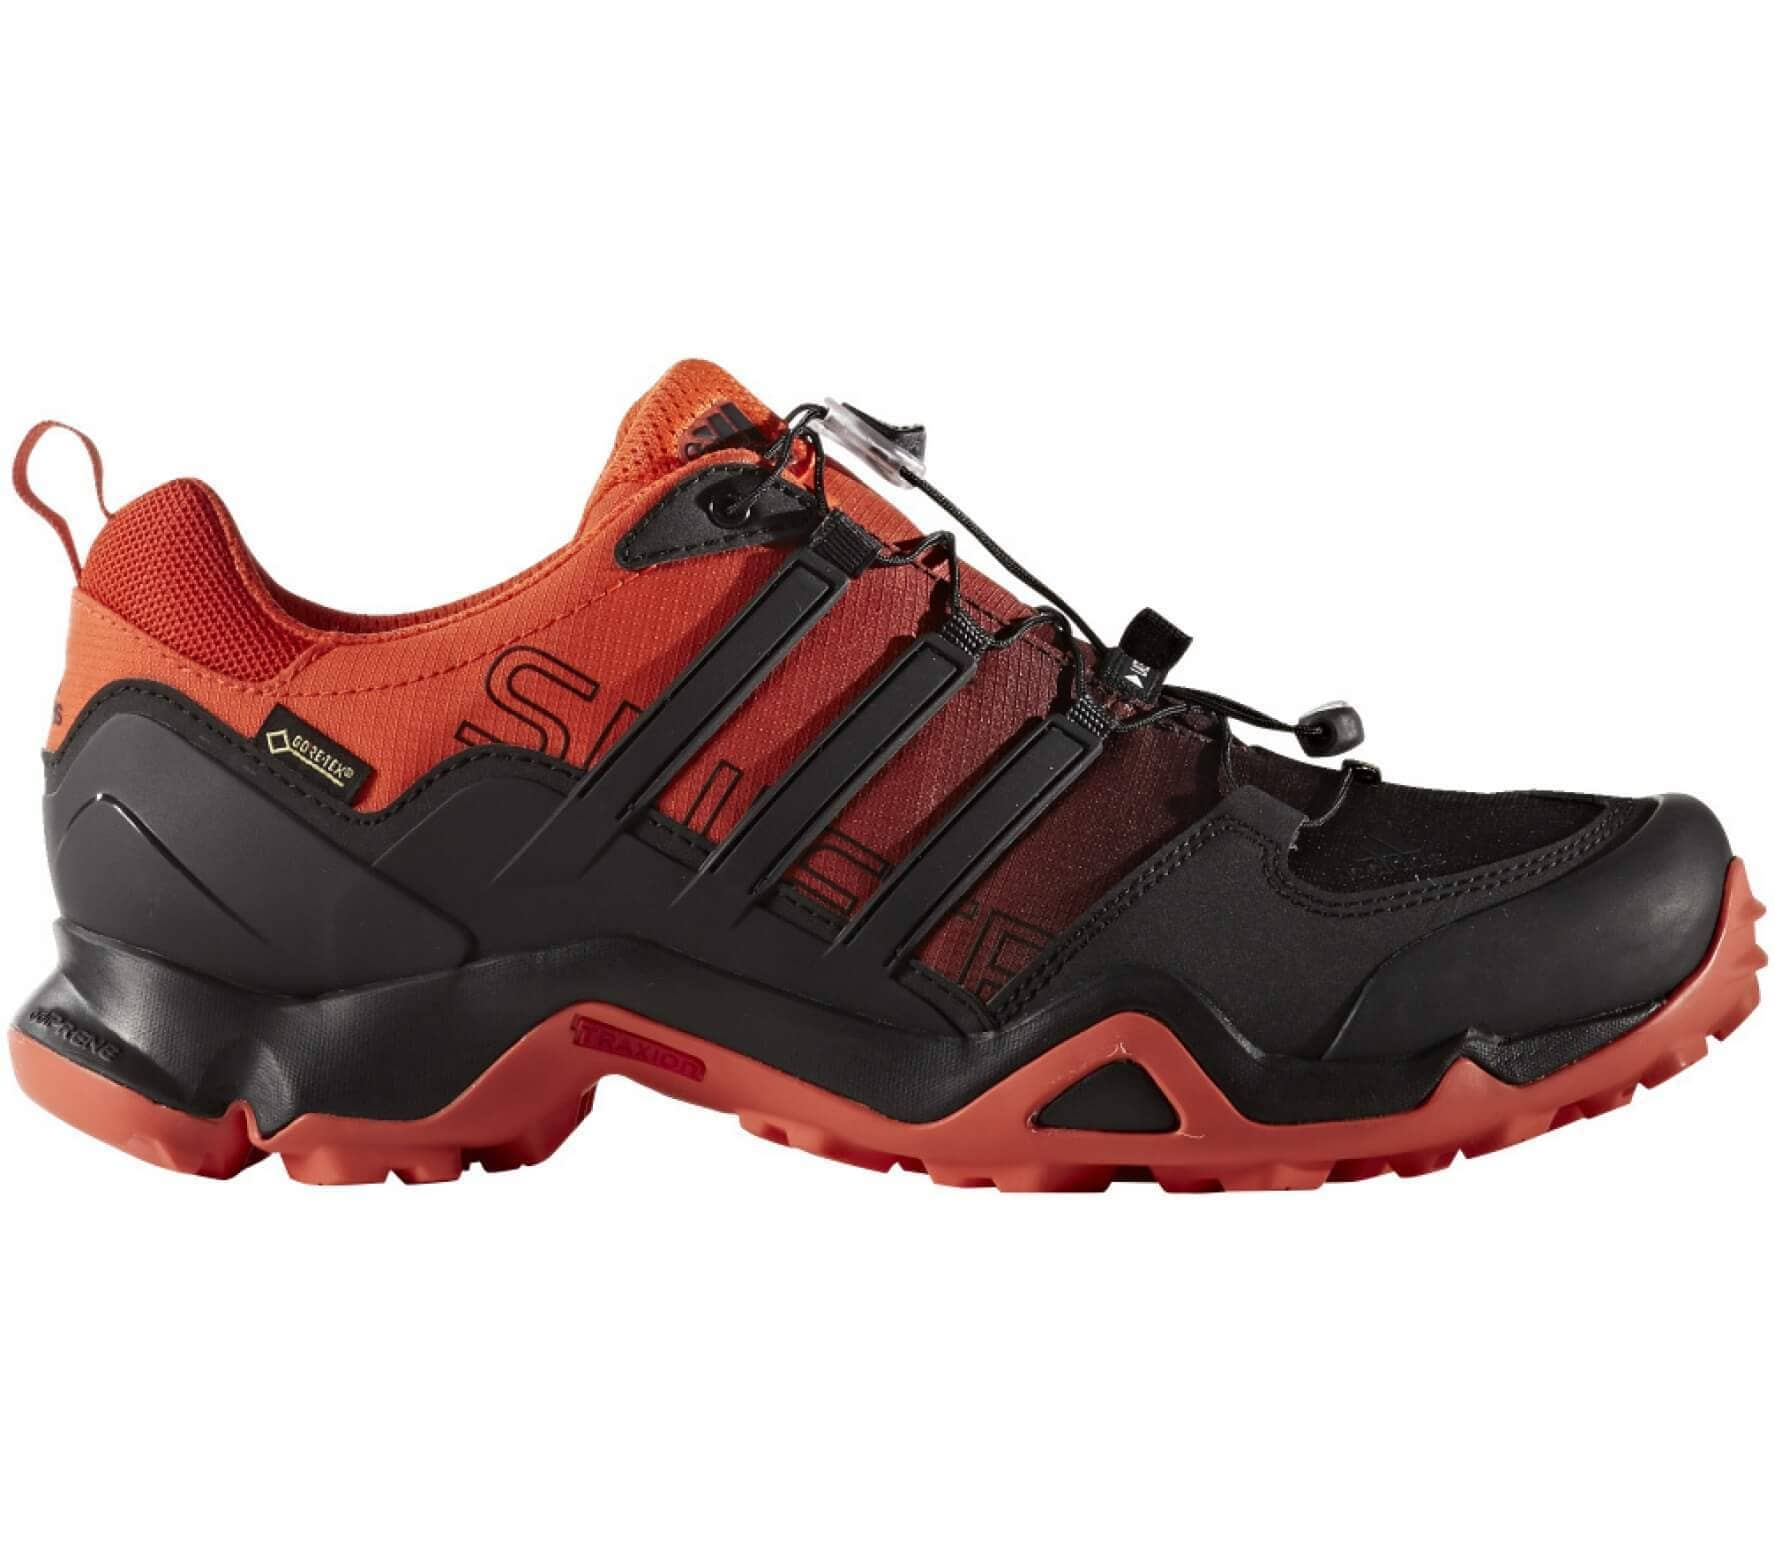 1a81c132a Adidas - Terrex Swift R GTX men s hiking shoes (black red) - buy it ...